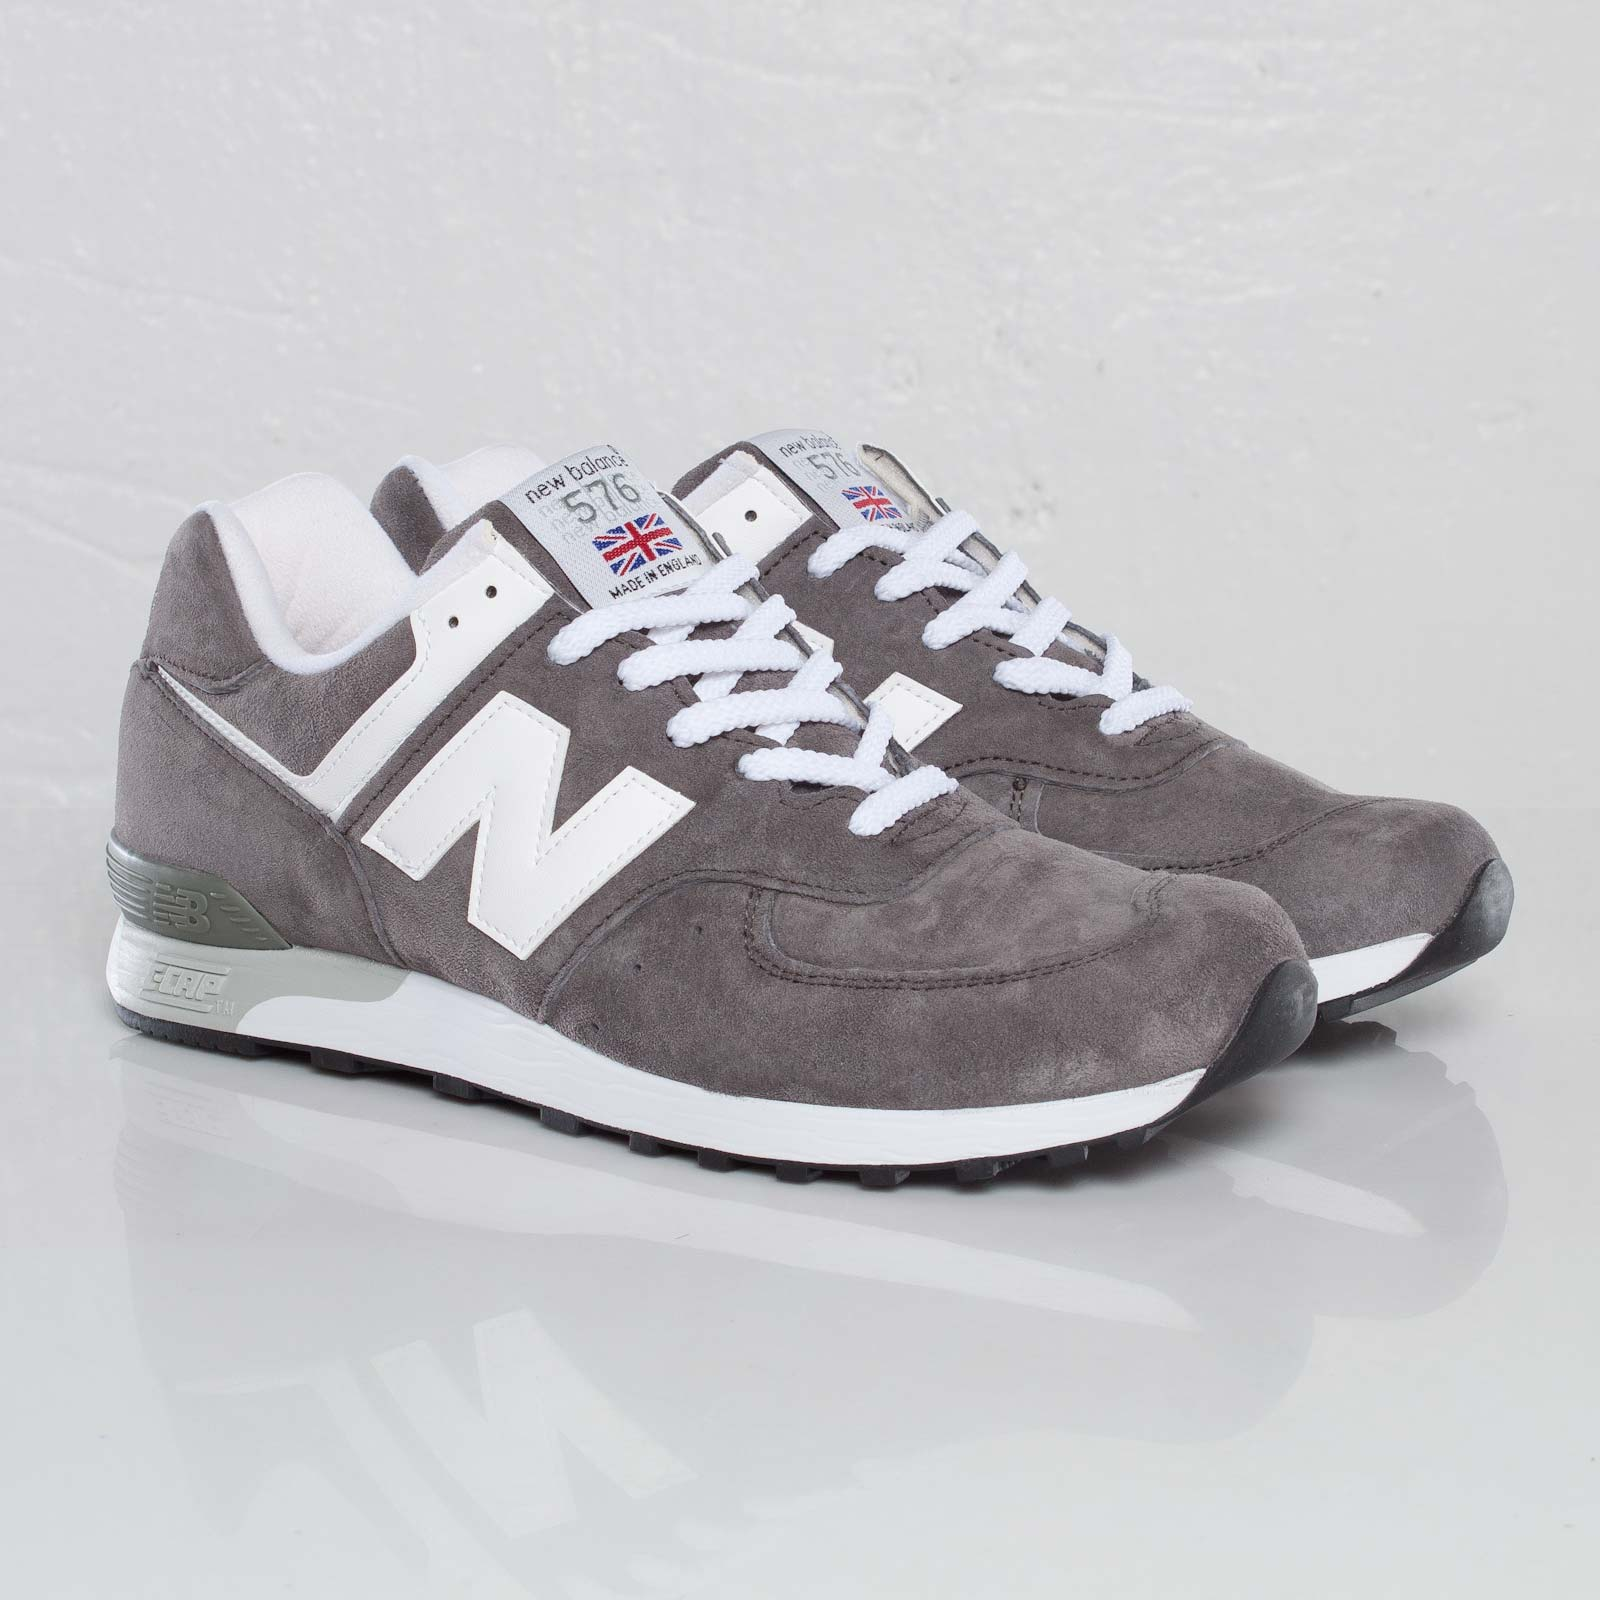 check-out 080a4 a5fd2 New Balance M576 - 83650 - Sneakersnstuff | sneakers ...